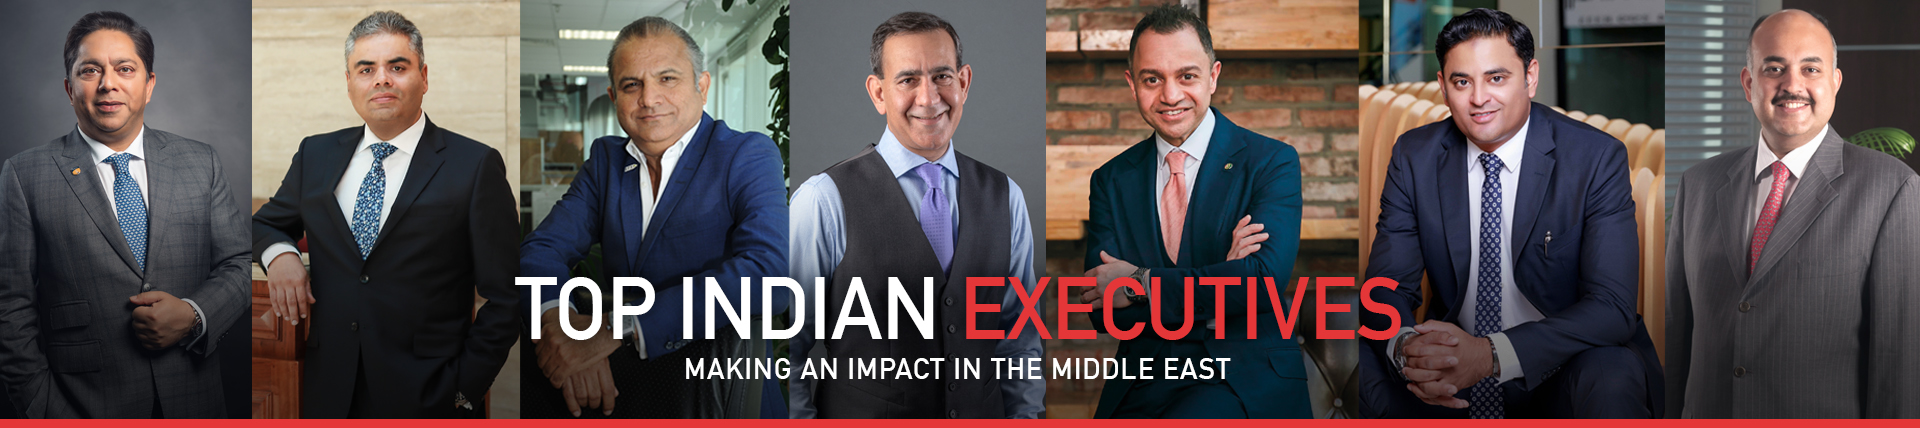 Top 30 Indian Executives In The Middle East 2019